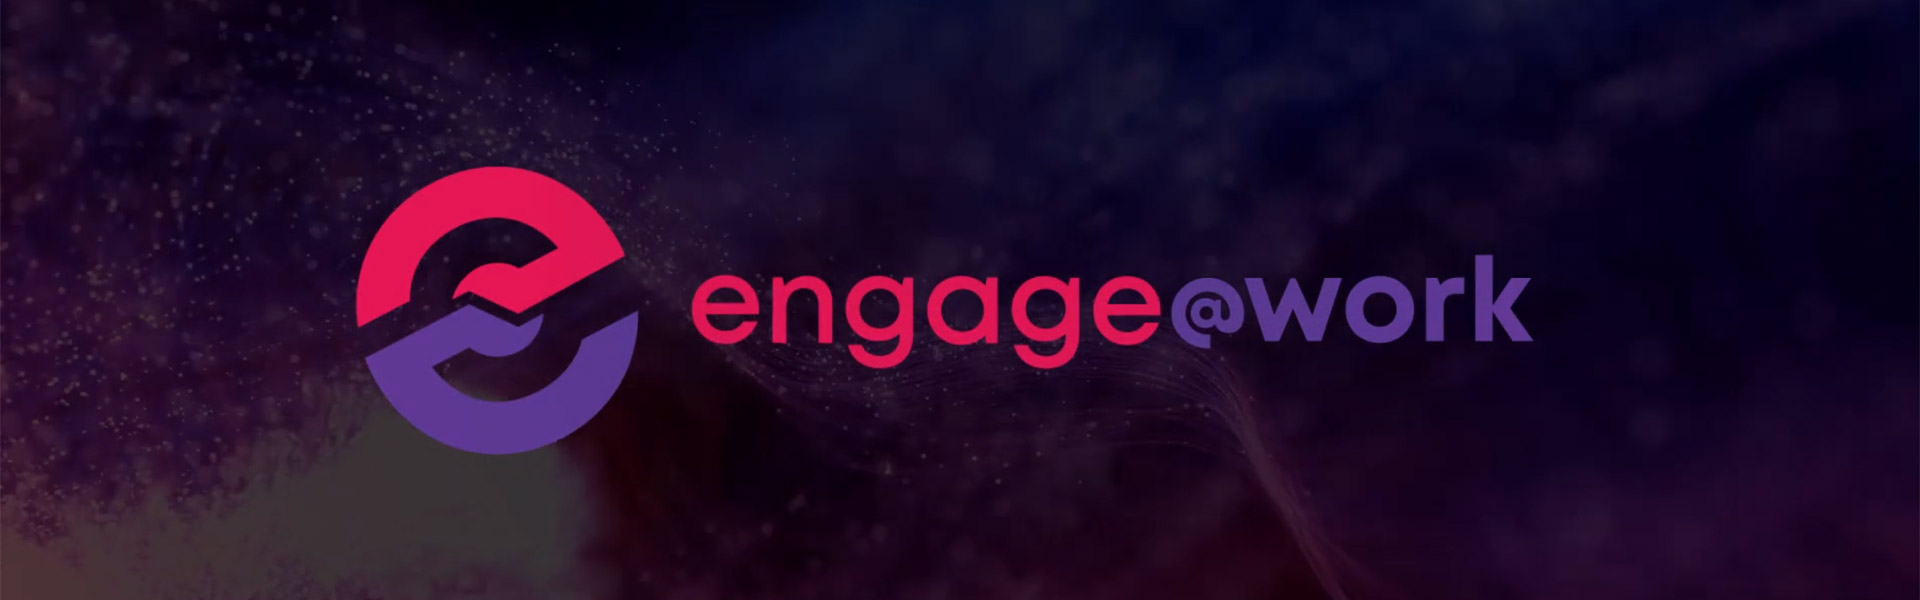 engage@work product video feature